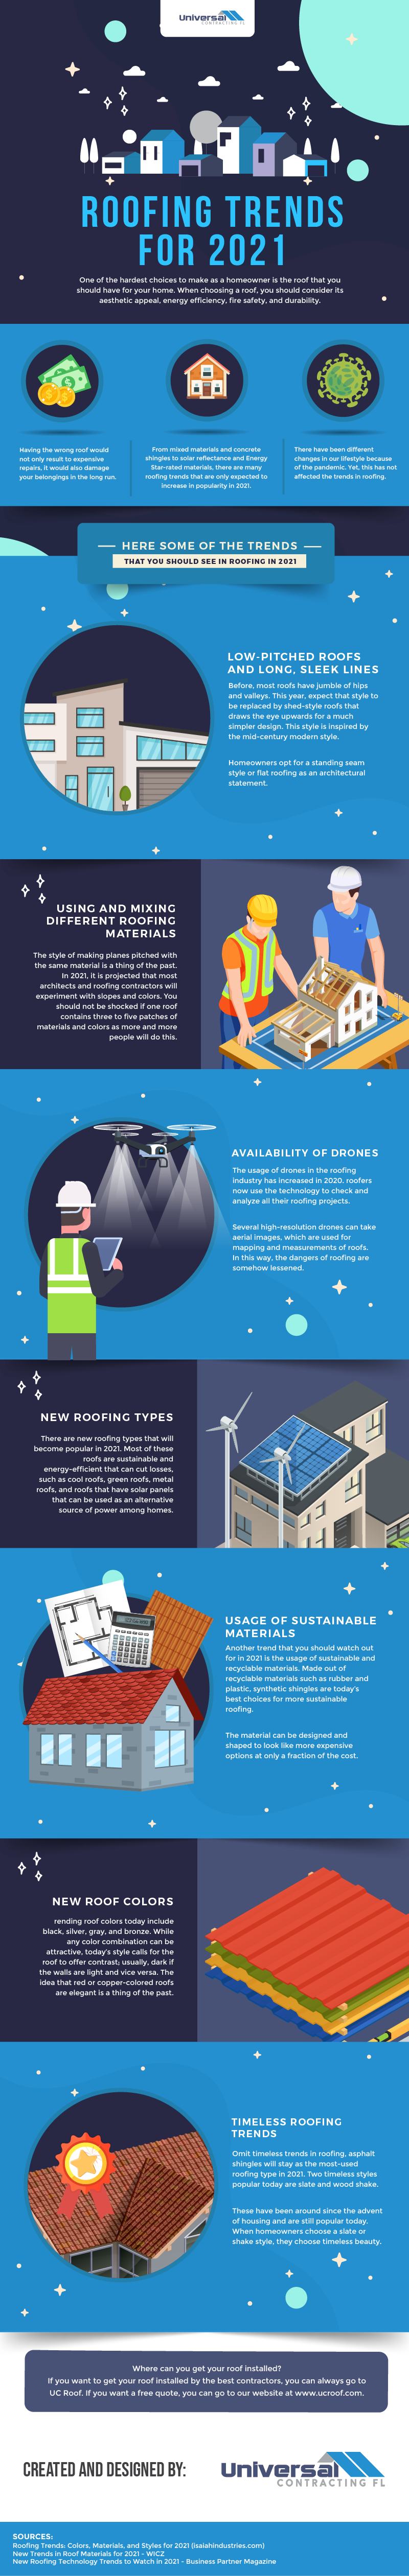 Roofing Trends 2021 - Infographic